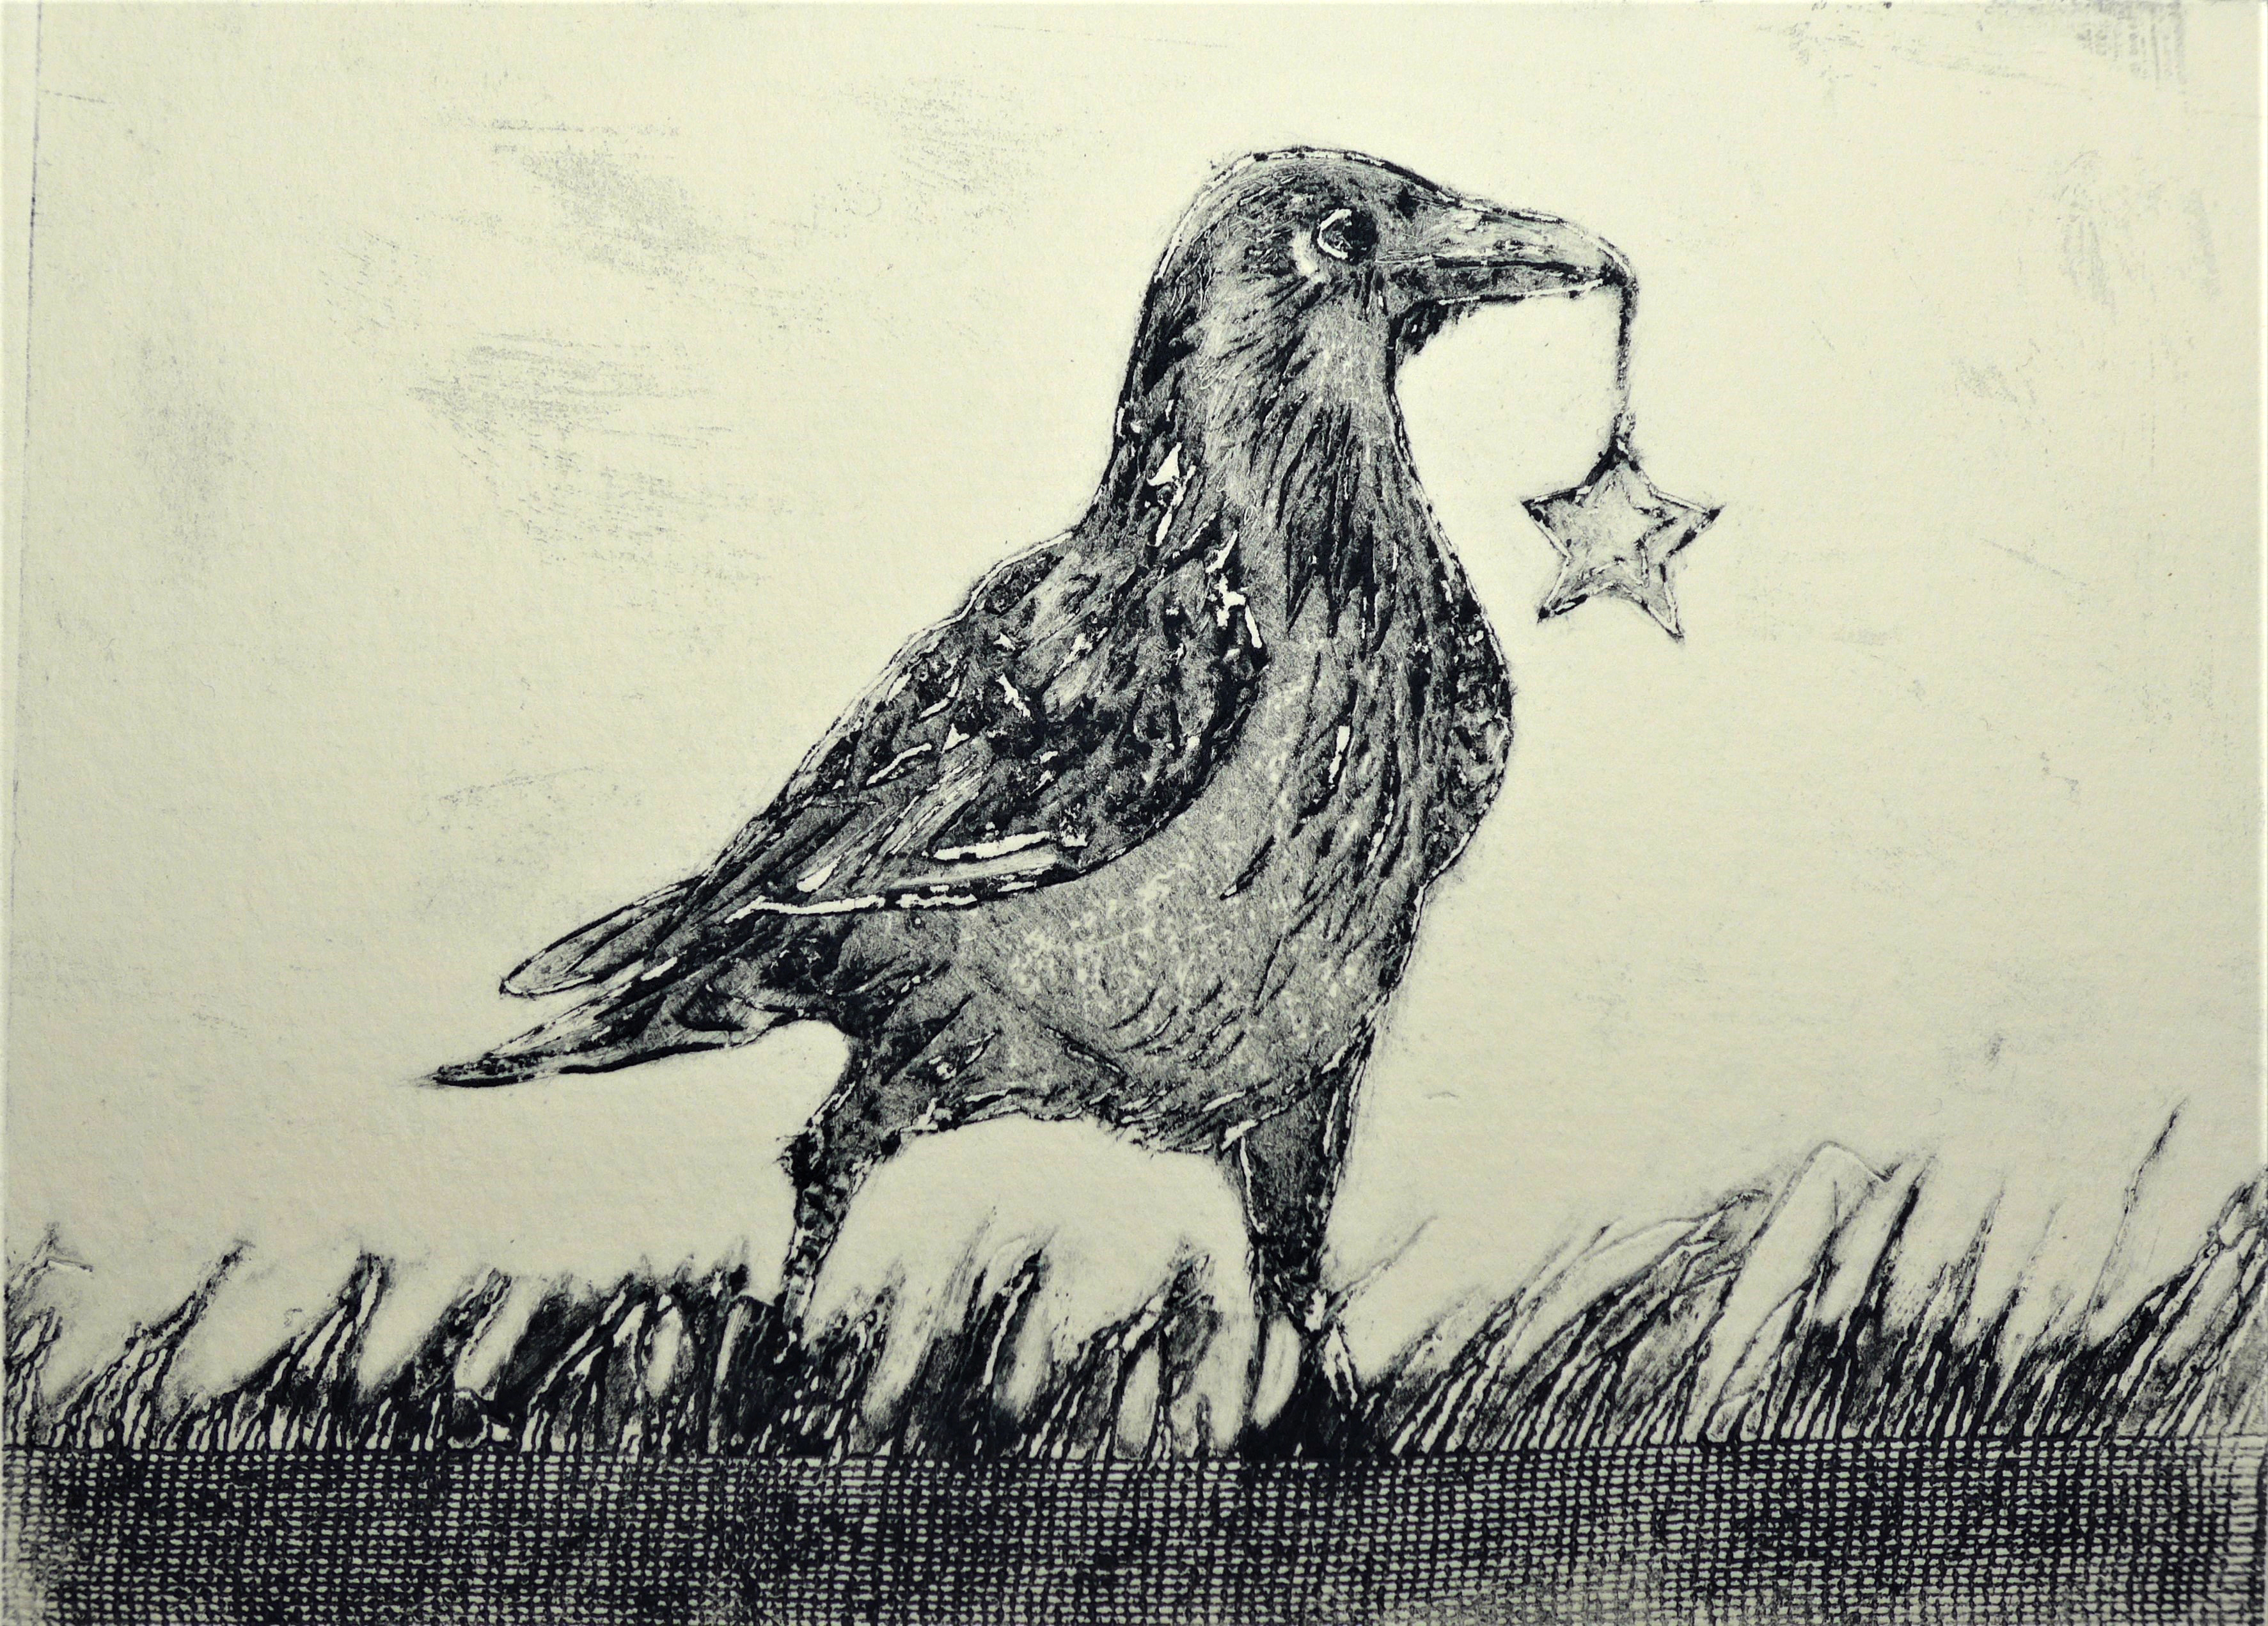 Crow carrying Star